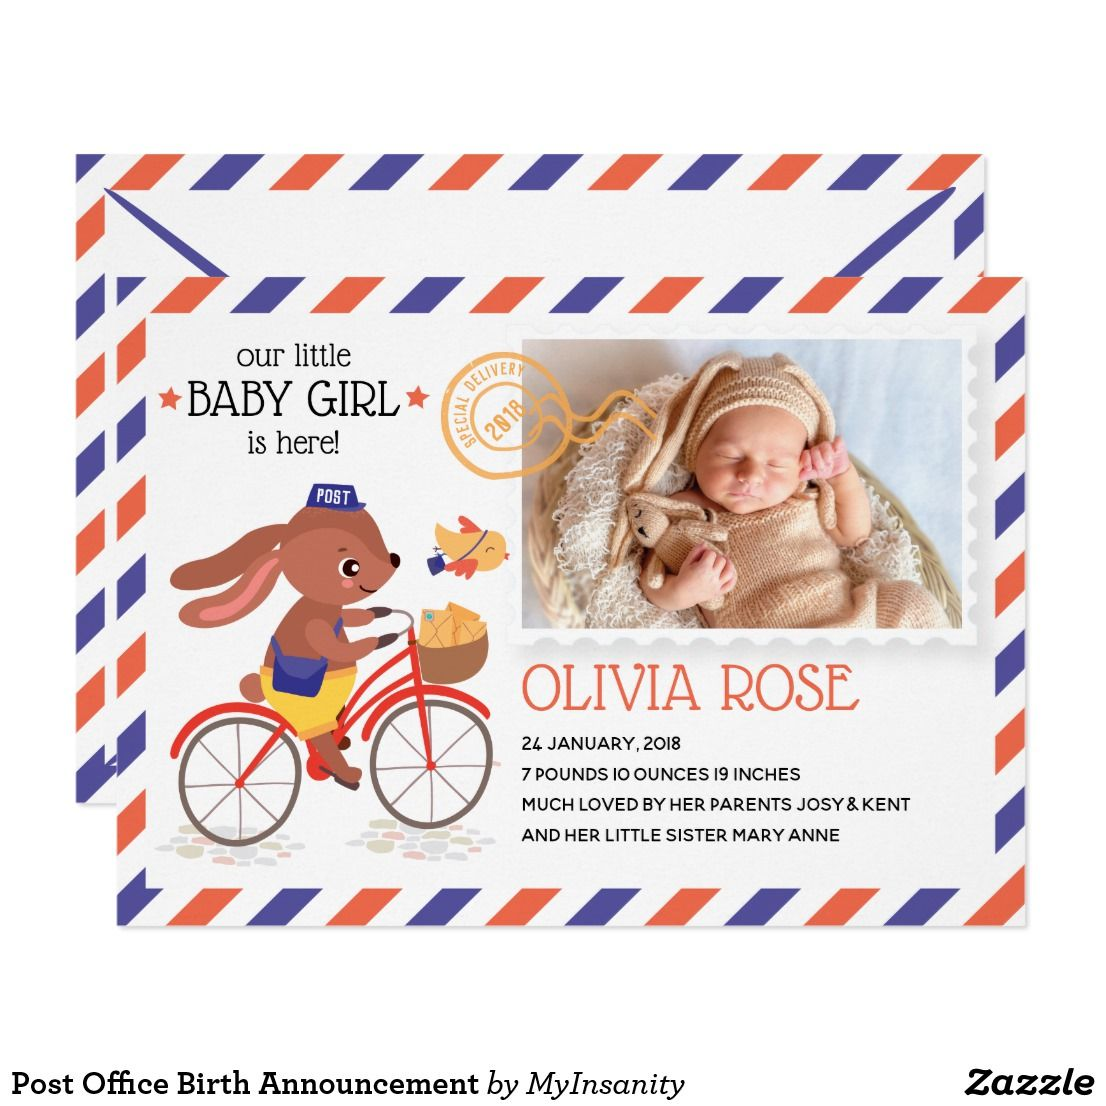 Post Office Birth Announcement   Zazzle com   Colliewood Productions